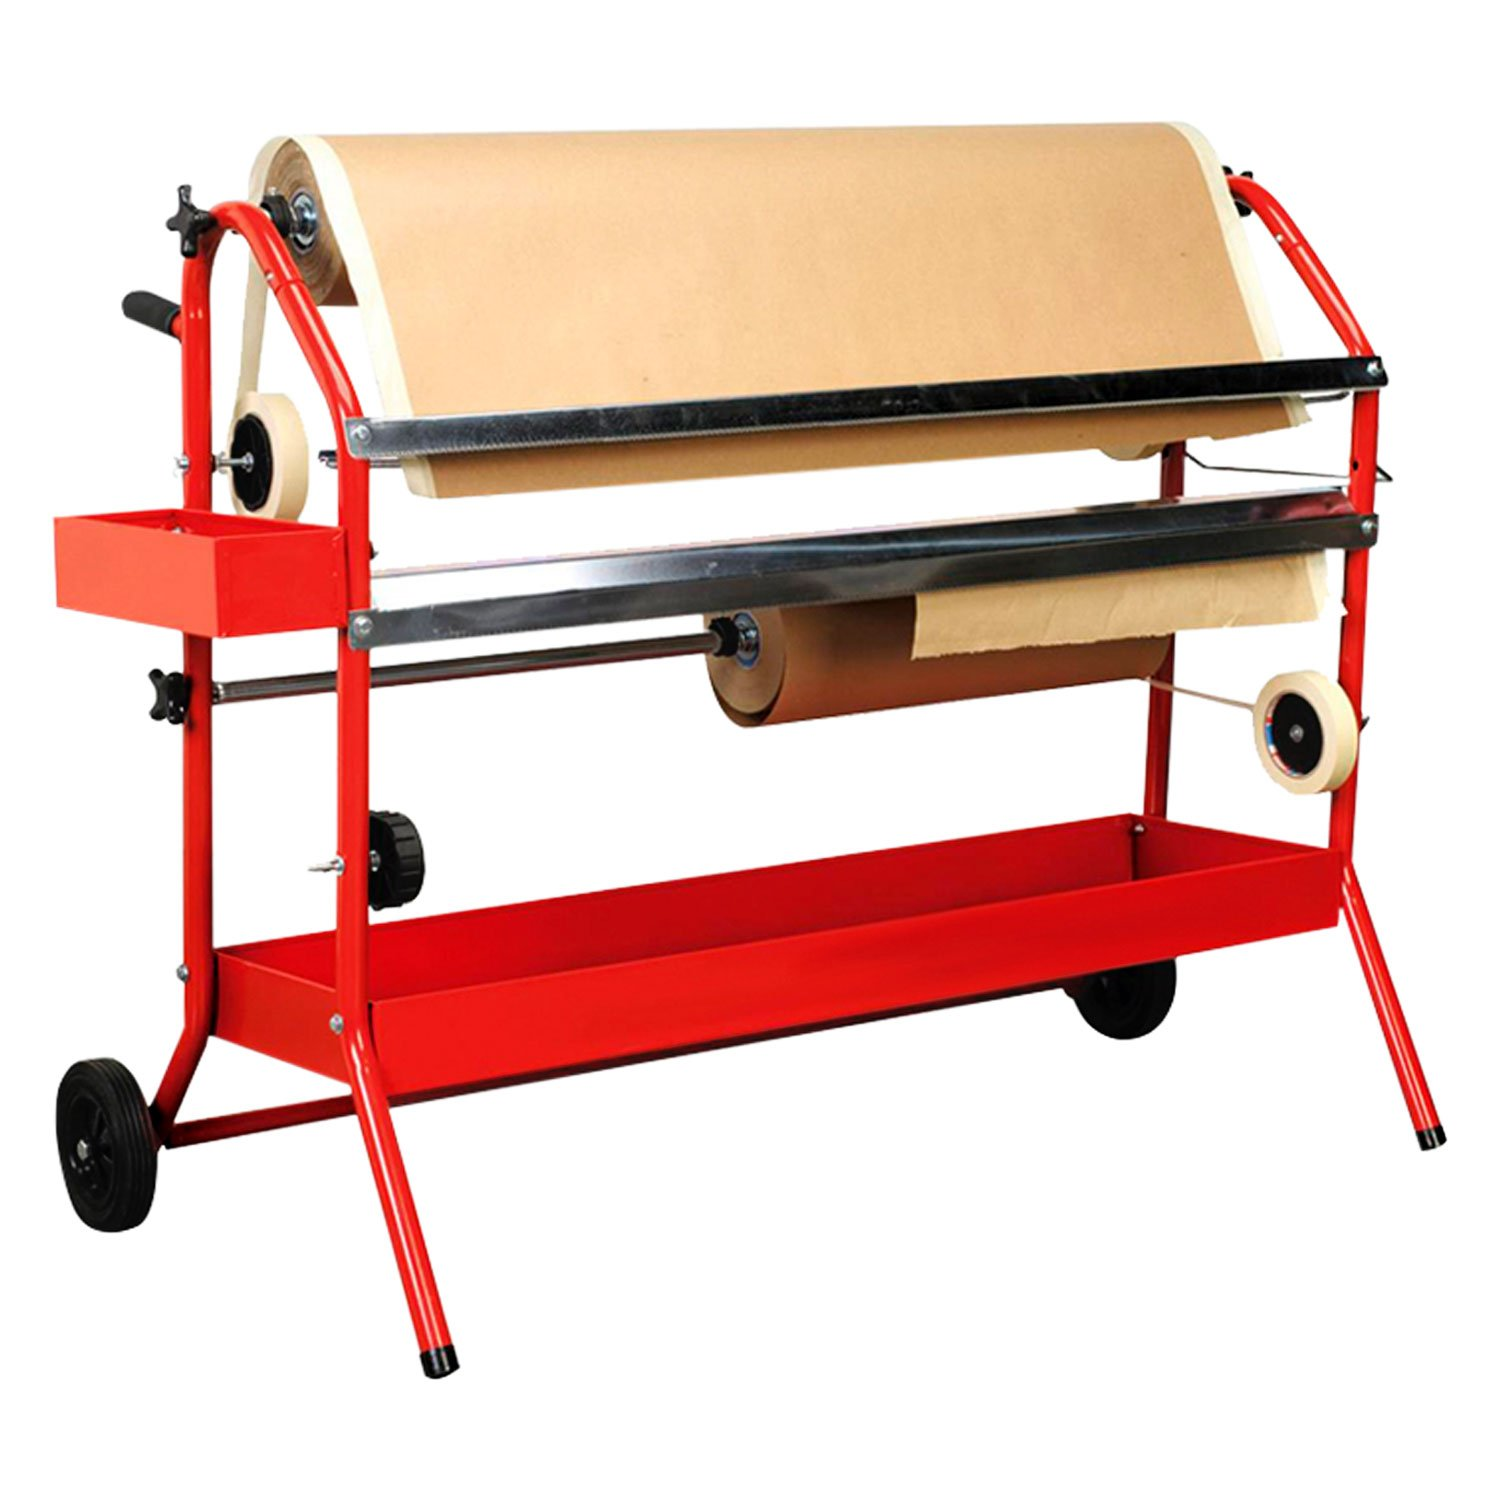 Car Painting Prep Auto Body Paint /& Repair Shop TCP Global Mobile 36 Multi-Roll Masking Paper Machine with Storage Trays